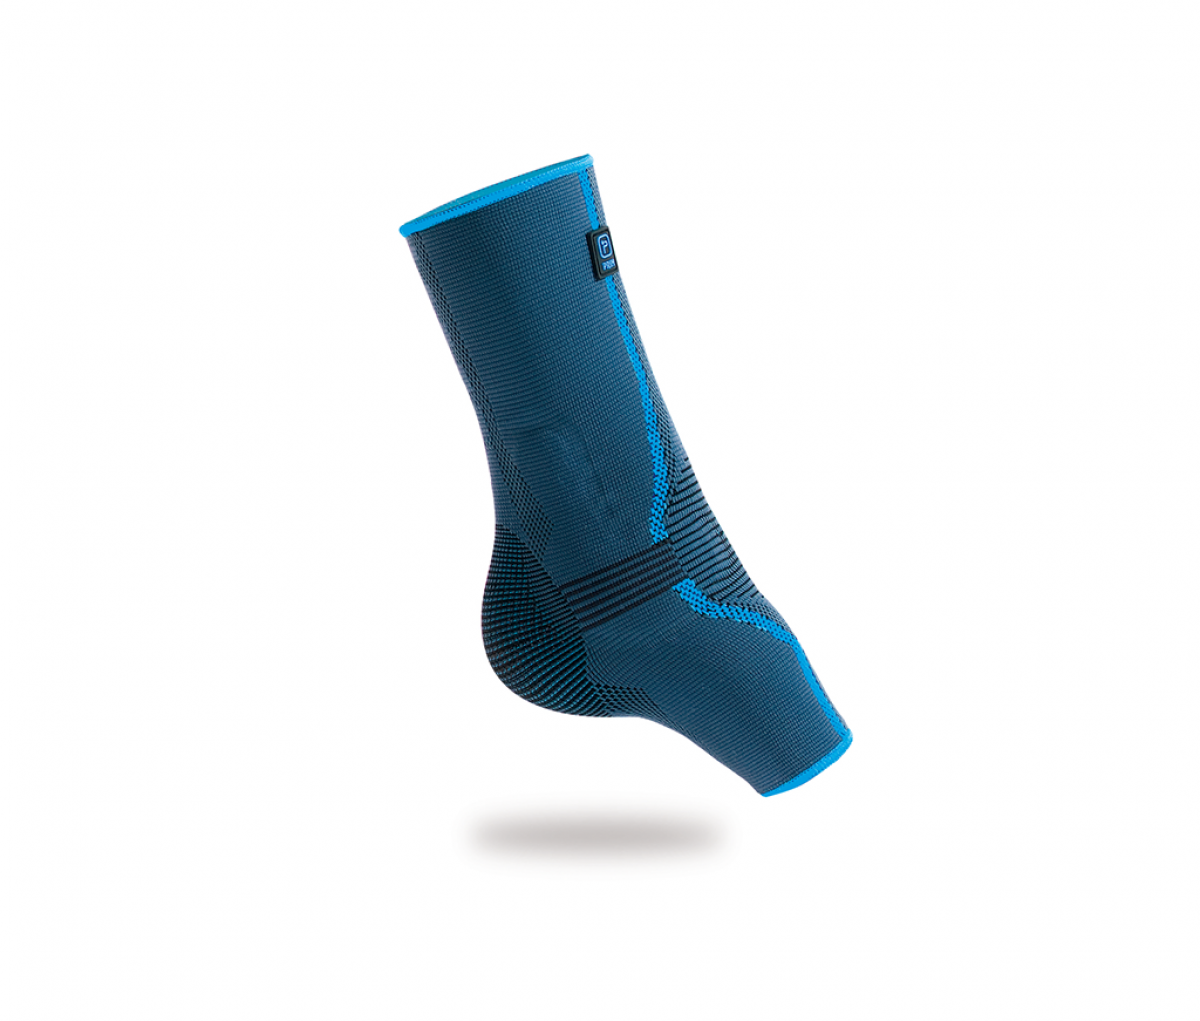 AQTIVO ANKLE BRACE WITH SILICONE INSERT - S P705